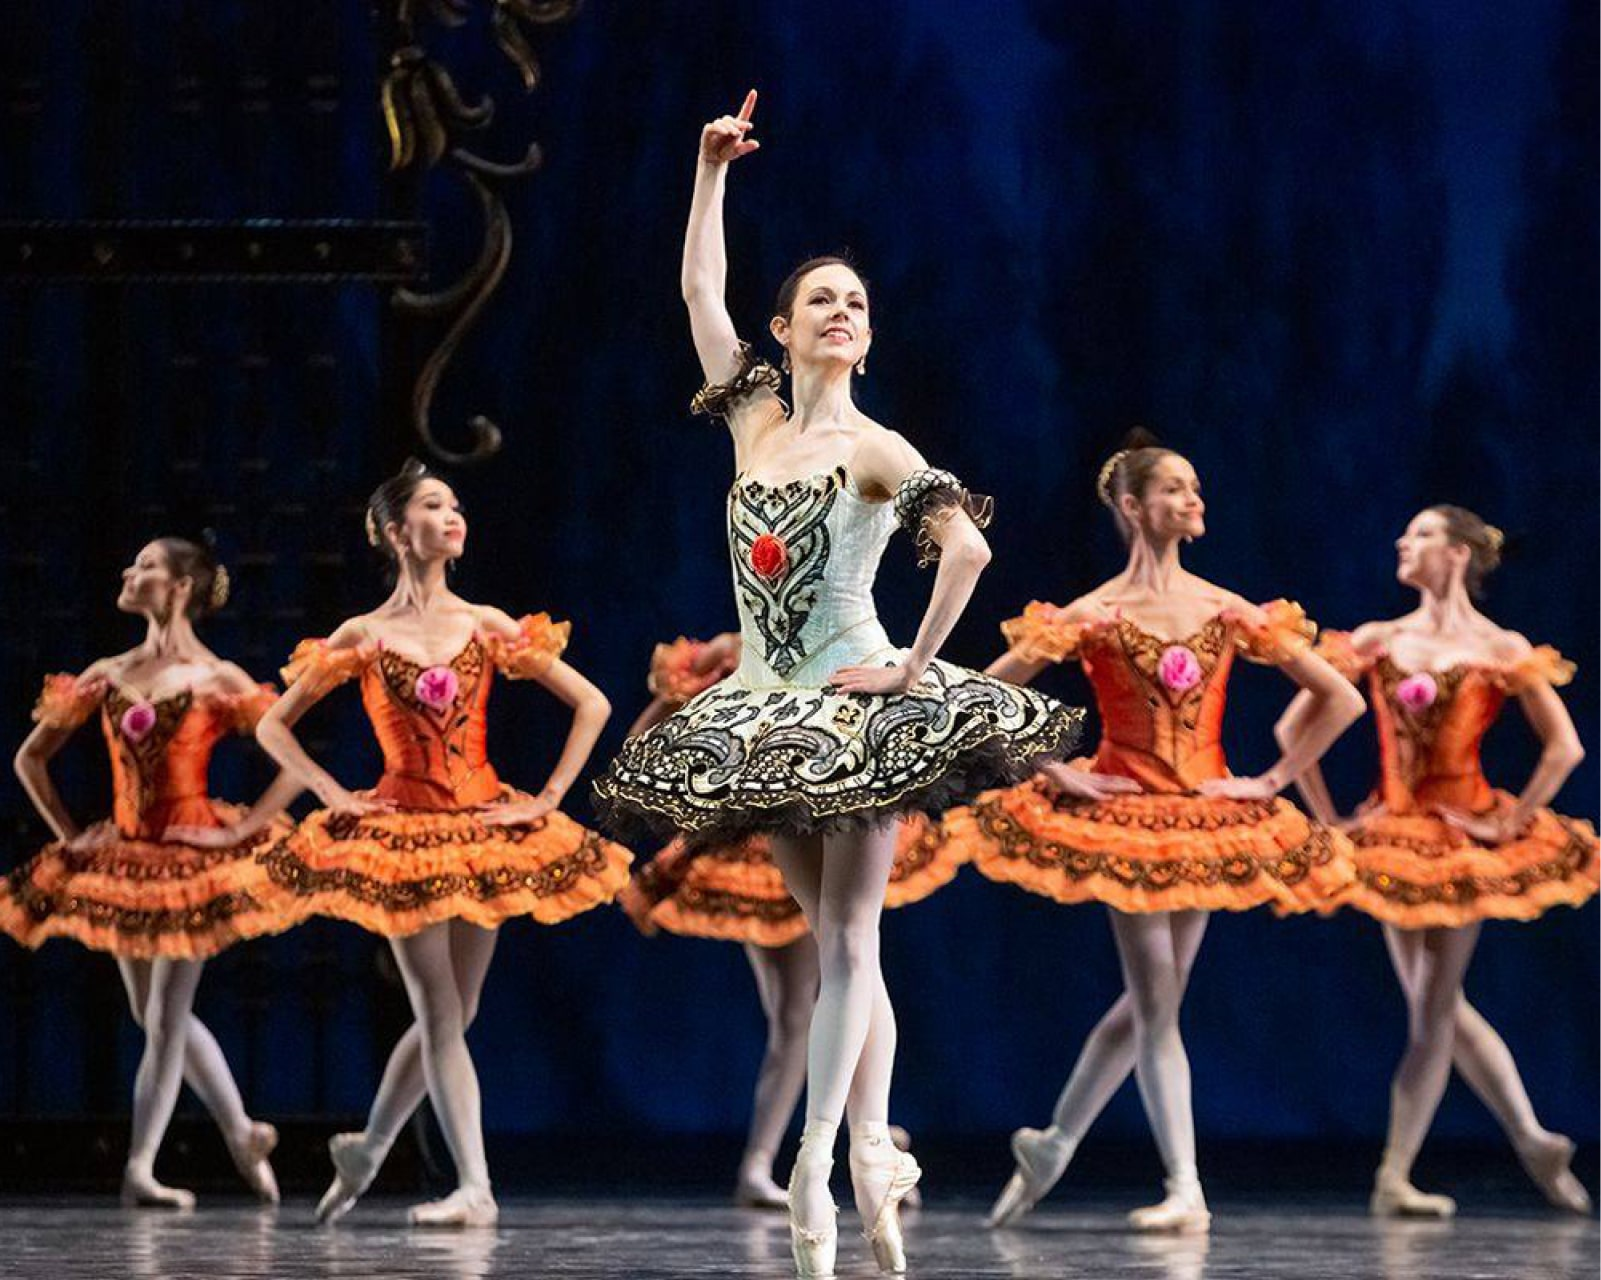 Ballerina in black and white tutu holds pose on point in front of chorus in bright orange tutus.